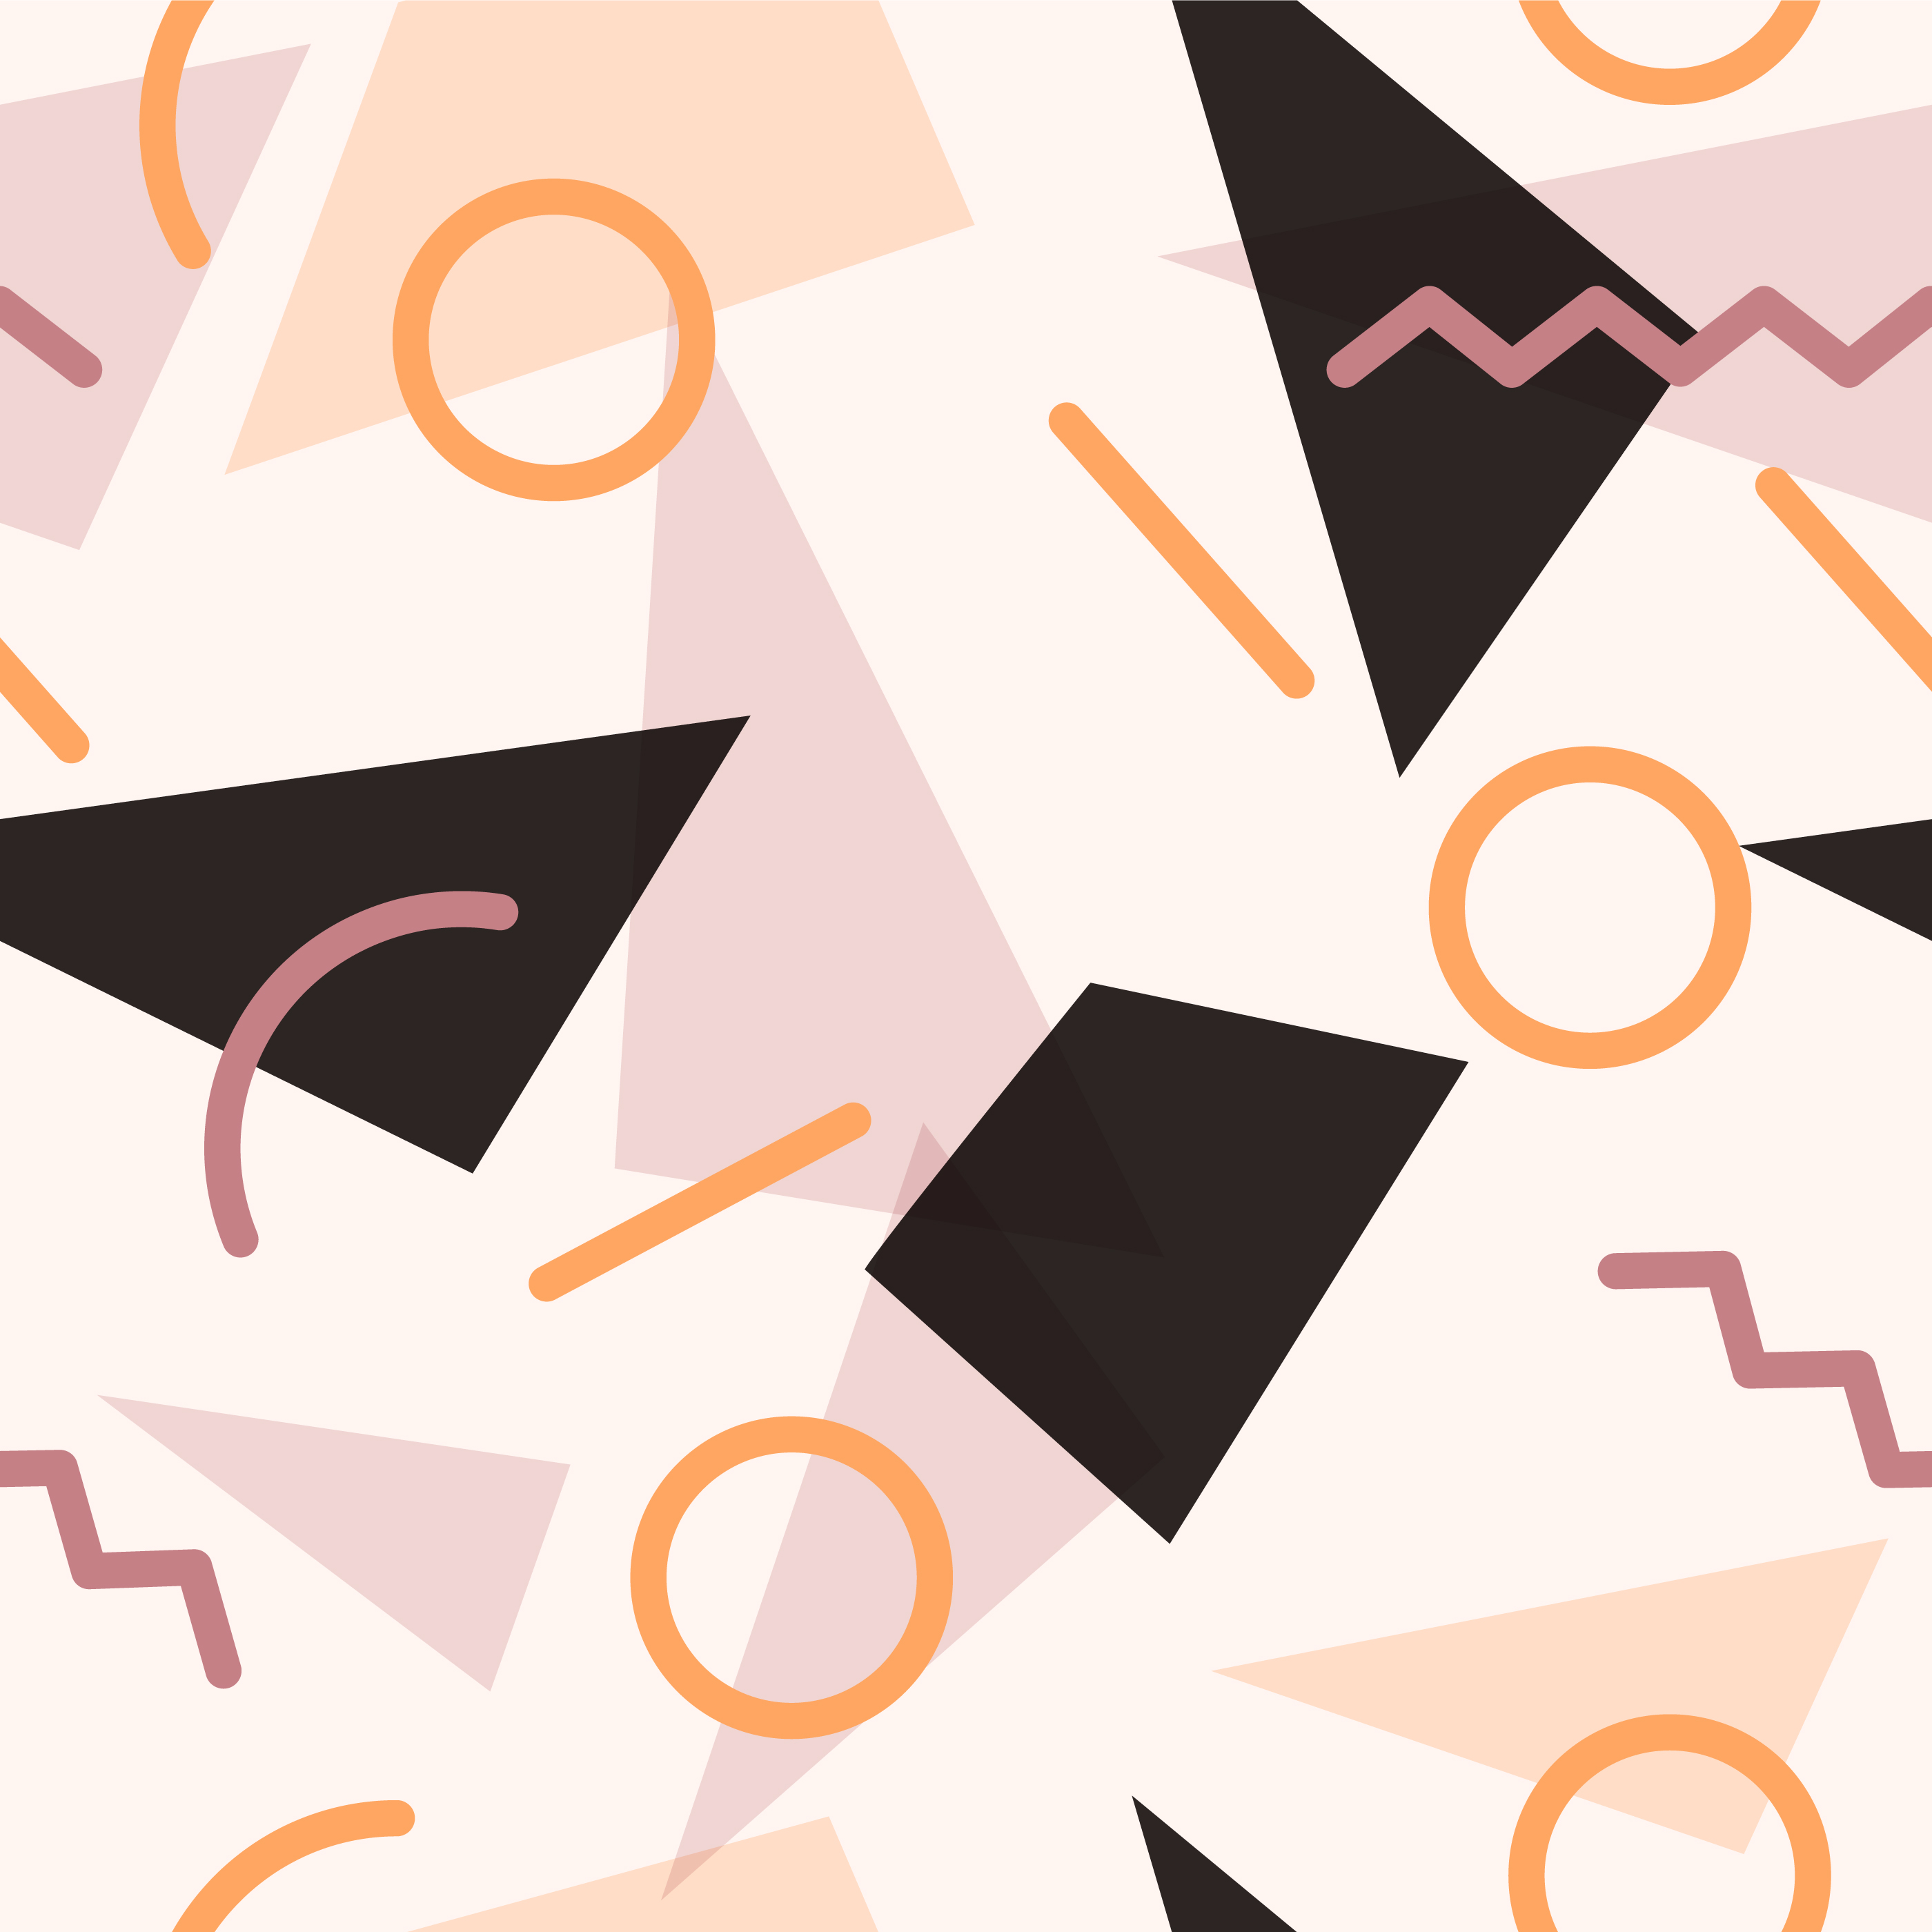 Geometric Memphis Shapes Seamless Pattern vector